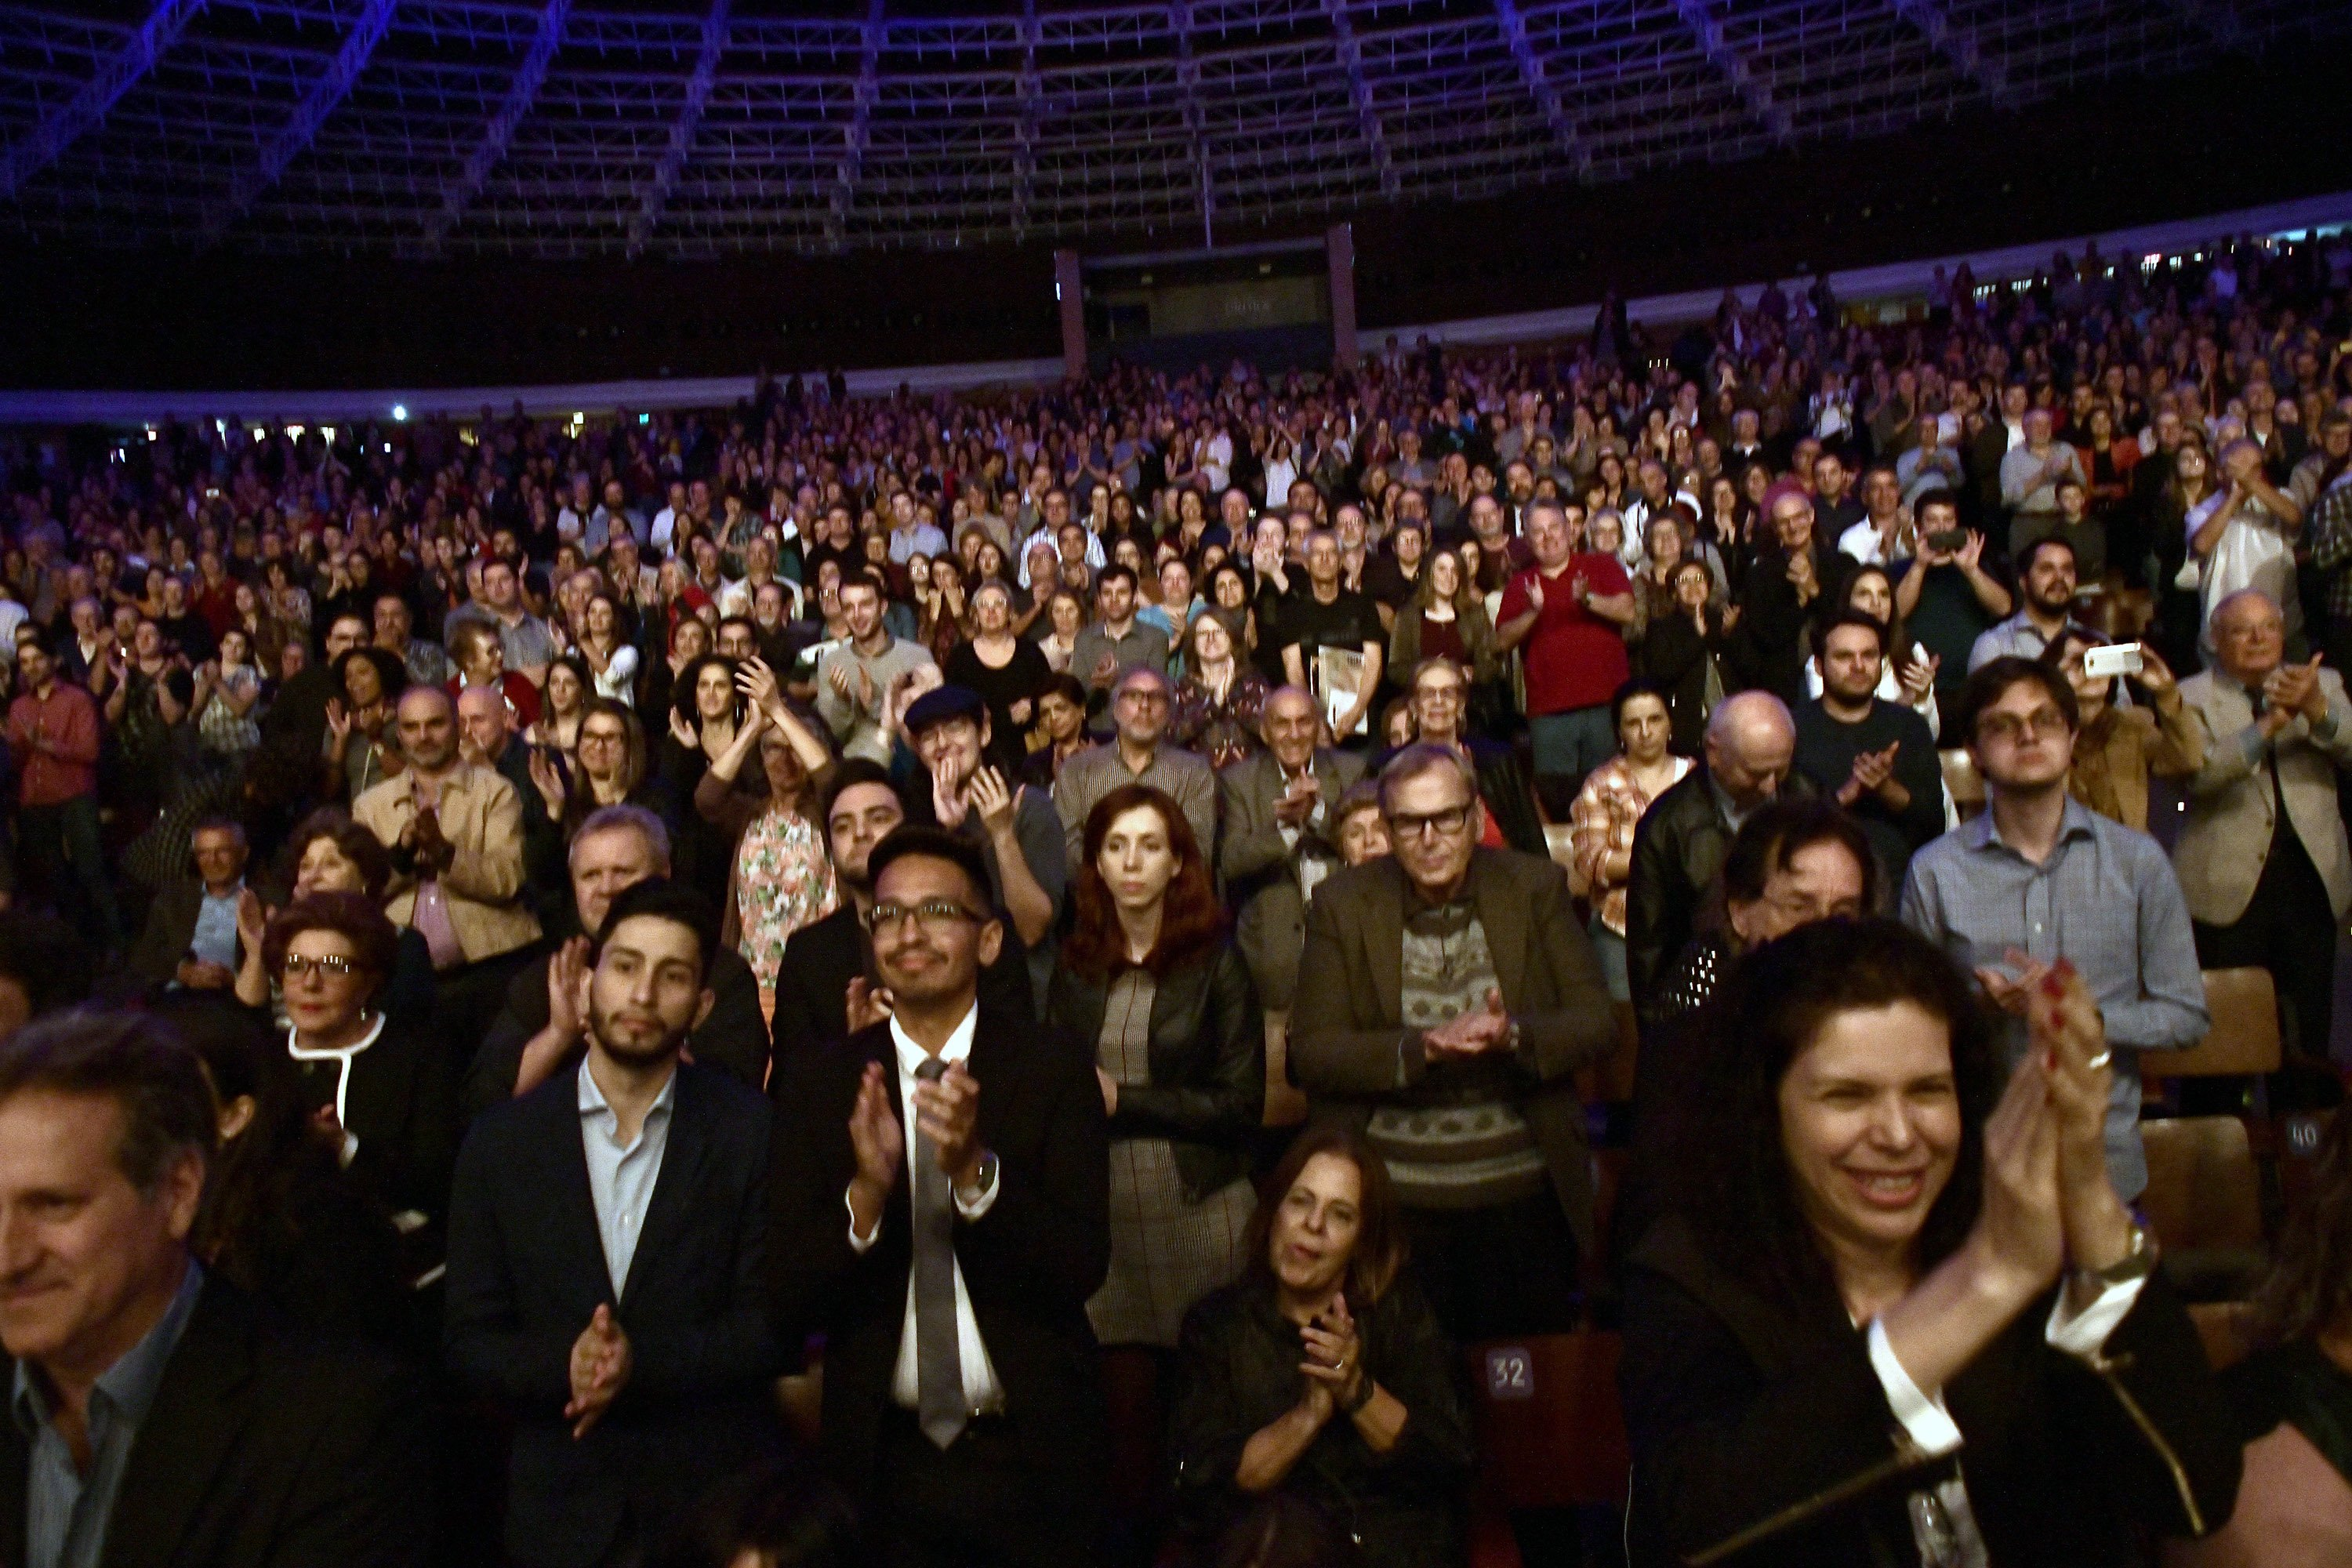 Some of the BPYO's audience in Porto Alegre